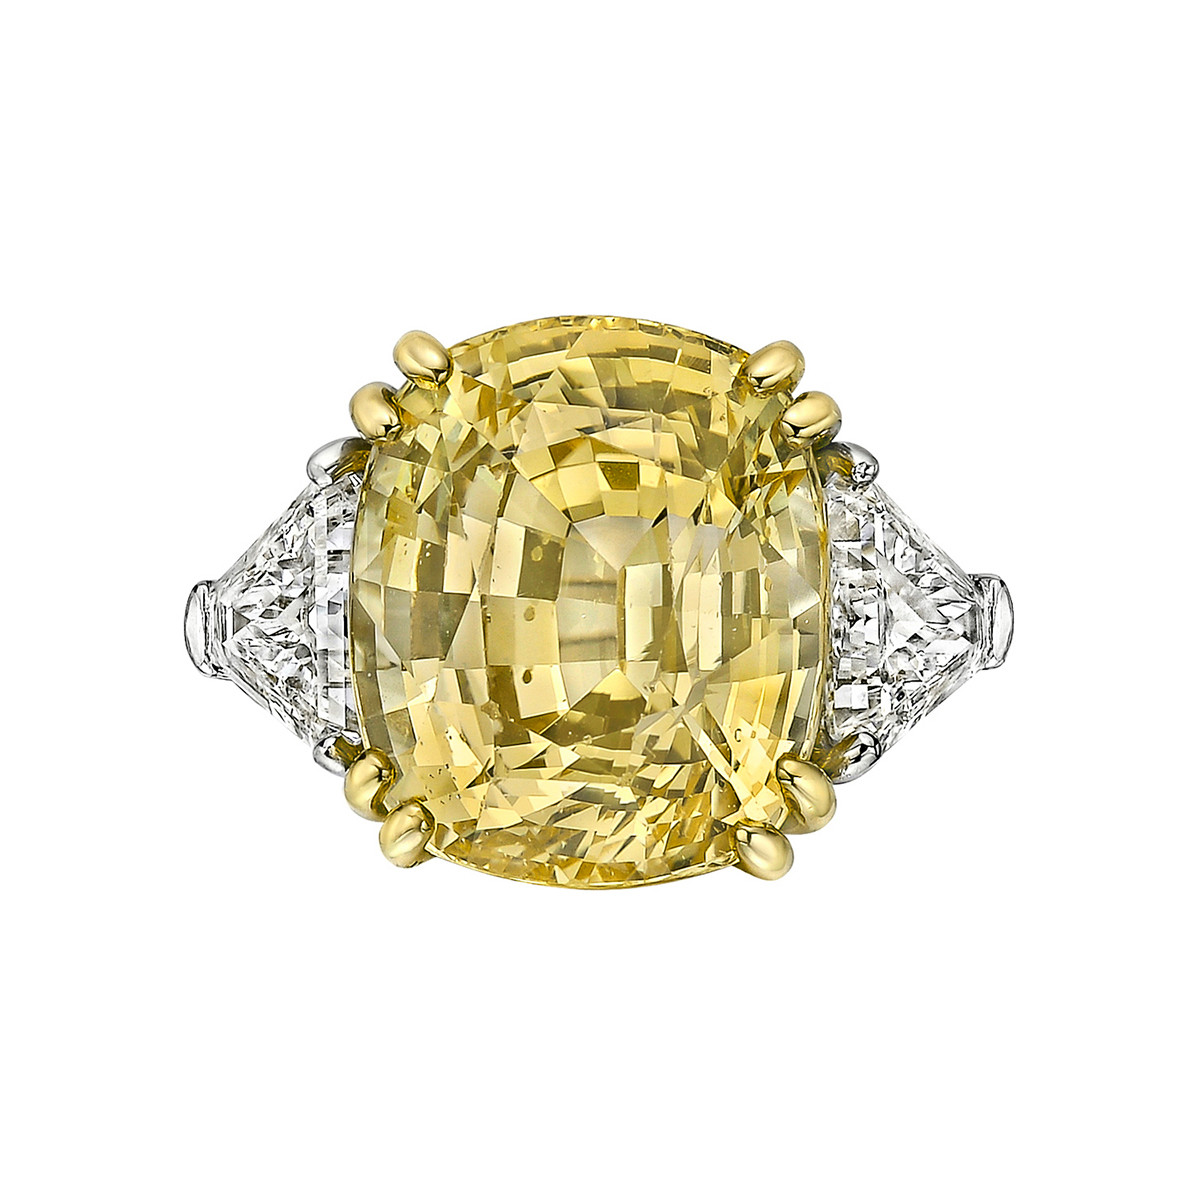 13.72ct No-Heat Yellow Sapphire Ring